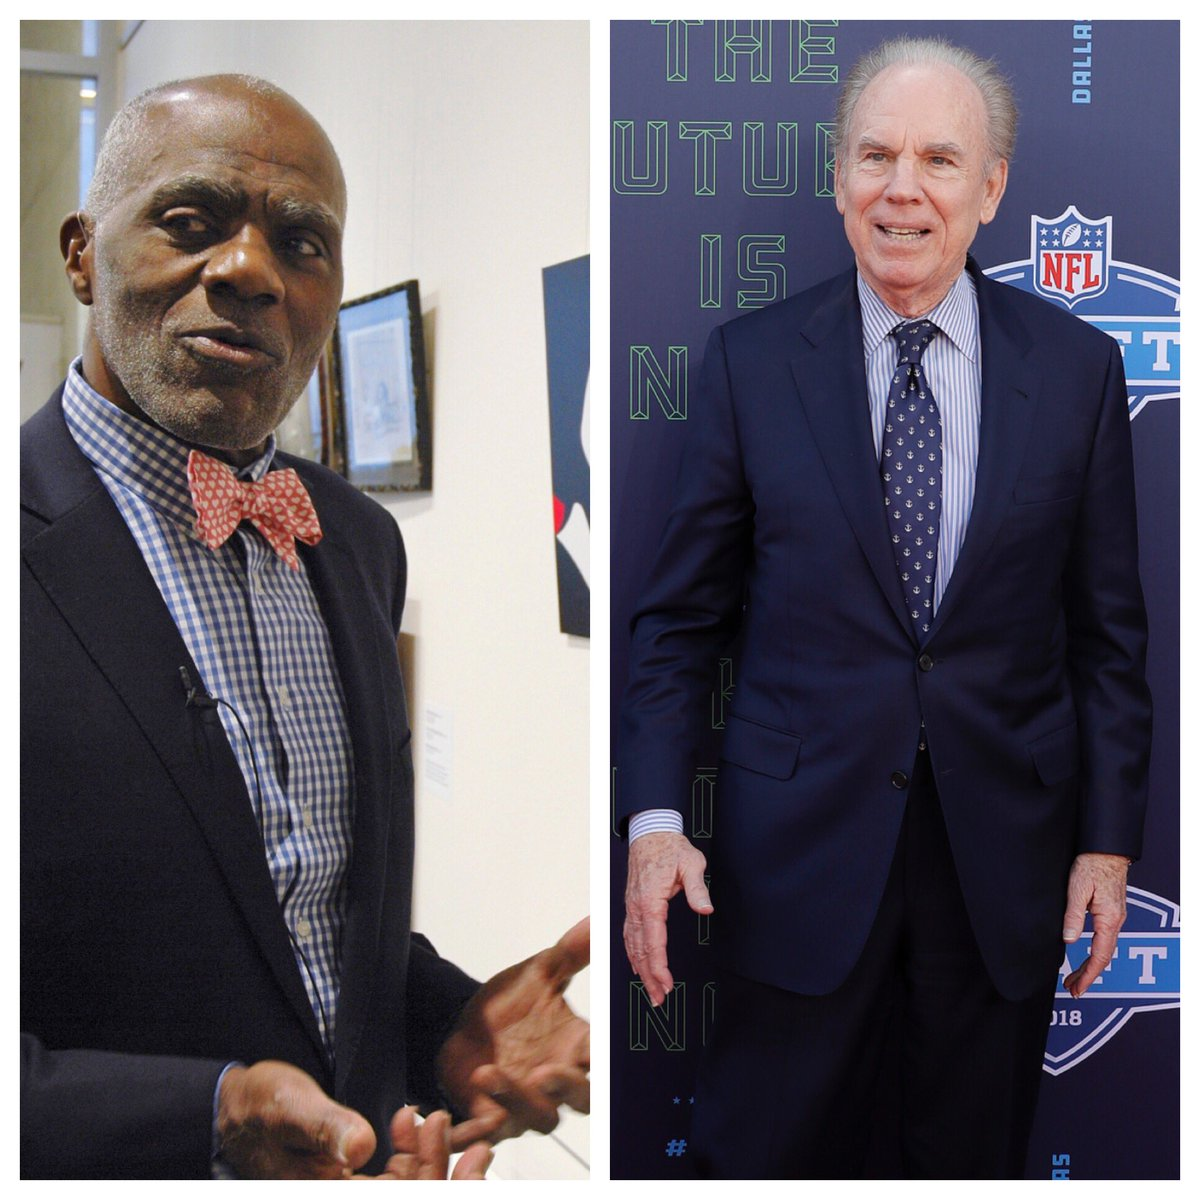 Congrats to Alan Page, Roger Staubach, and all recipients of the Presidential Medal of Freedom, the nation's highest civilian honor. Alan and Roger represent the best of the NFL, on and off the field.